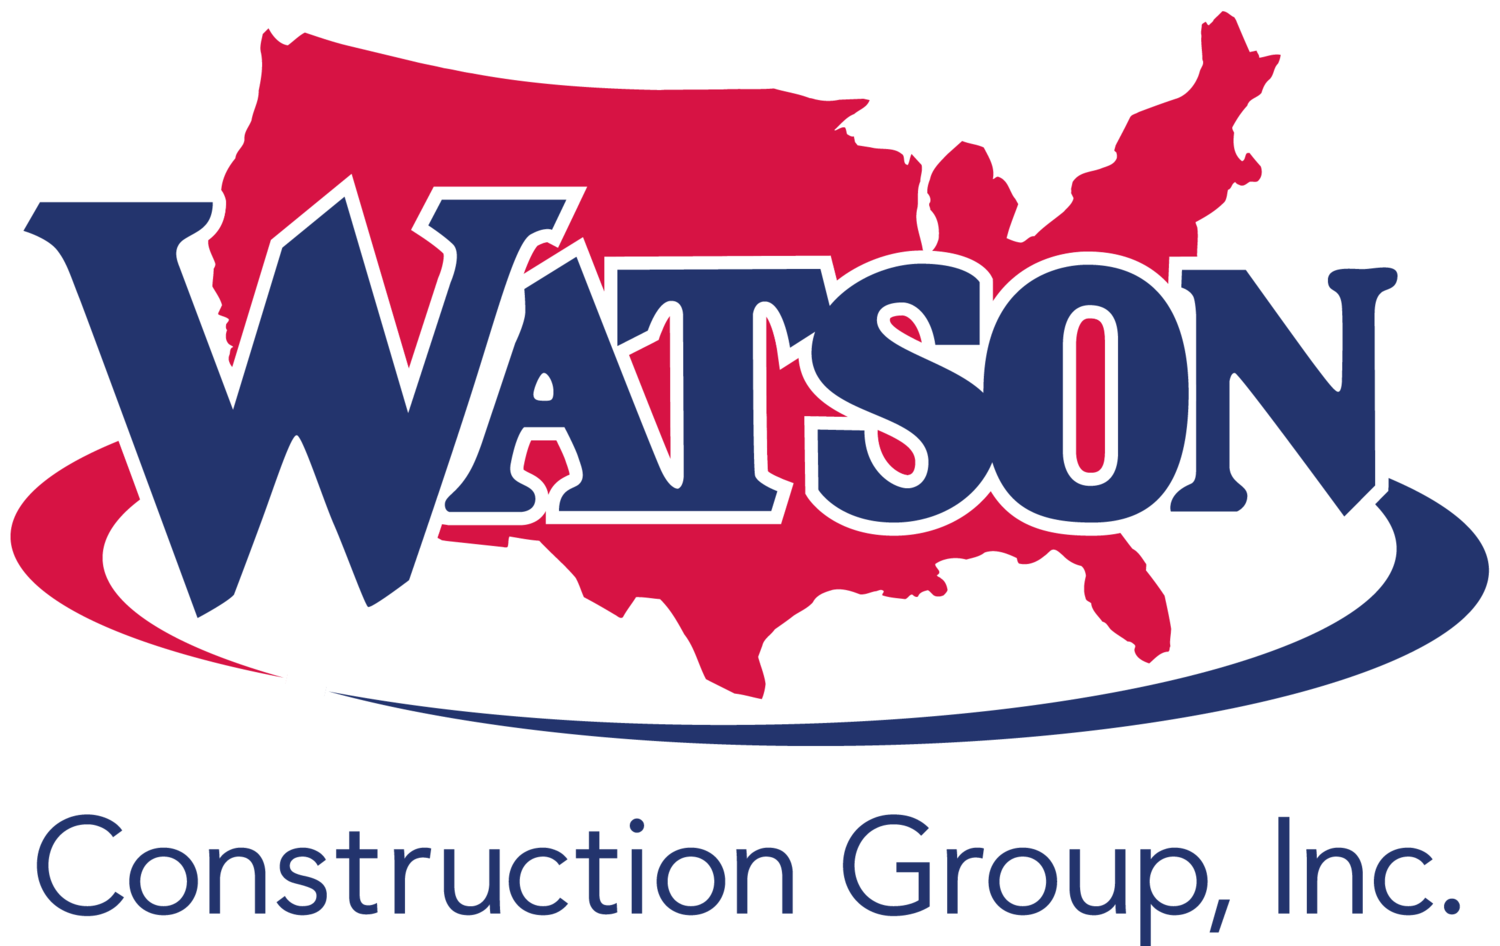 Watson Construction Group